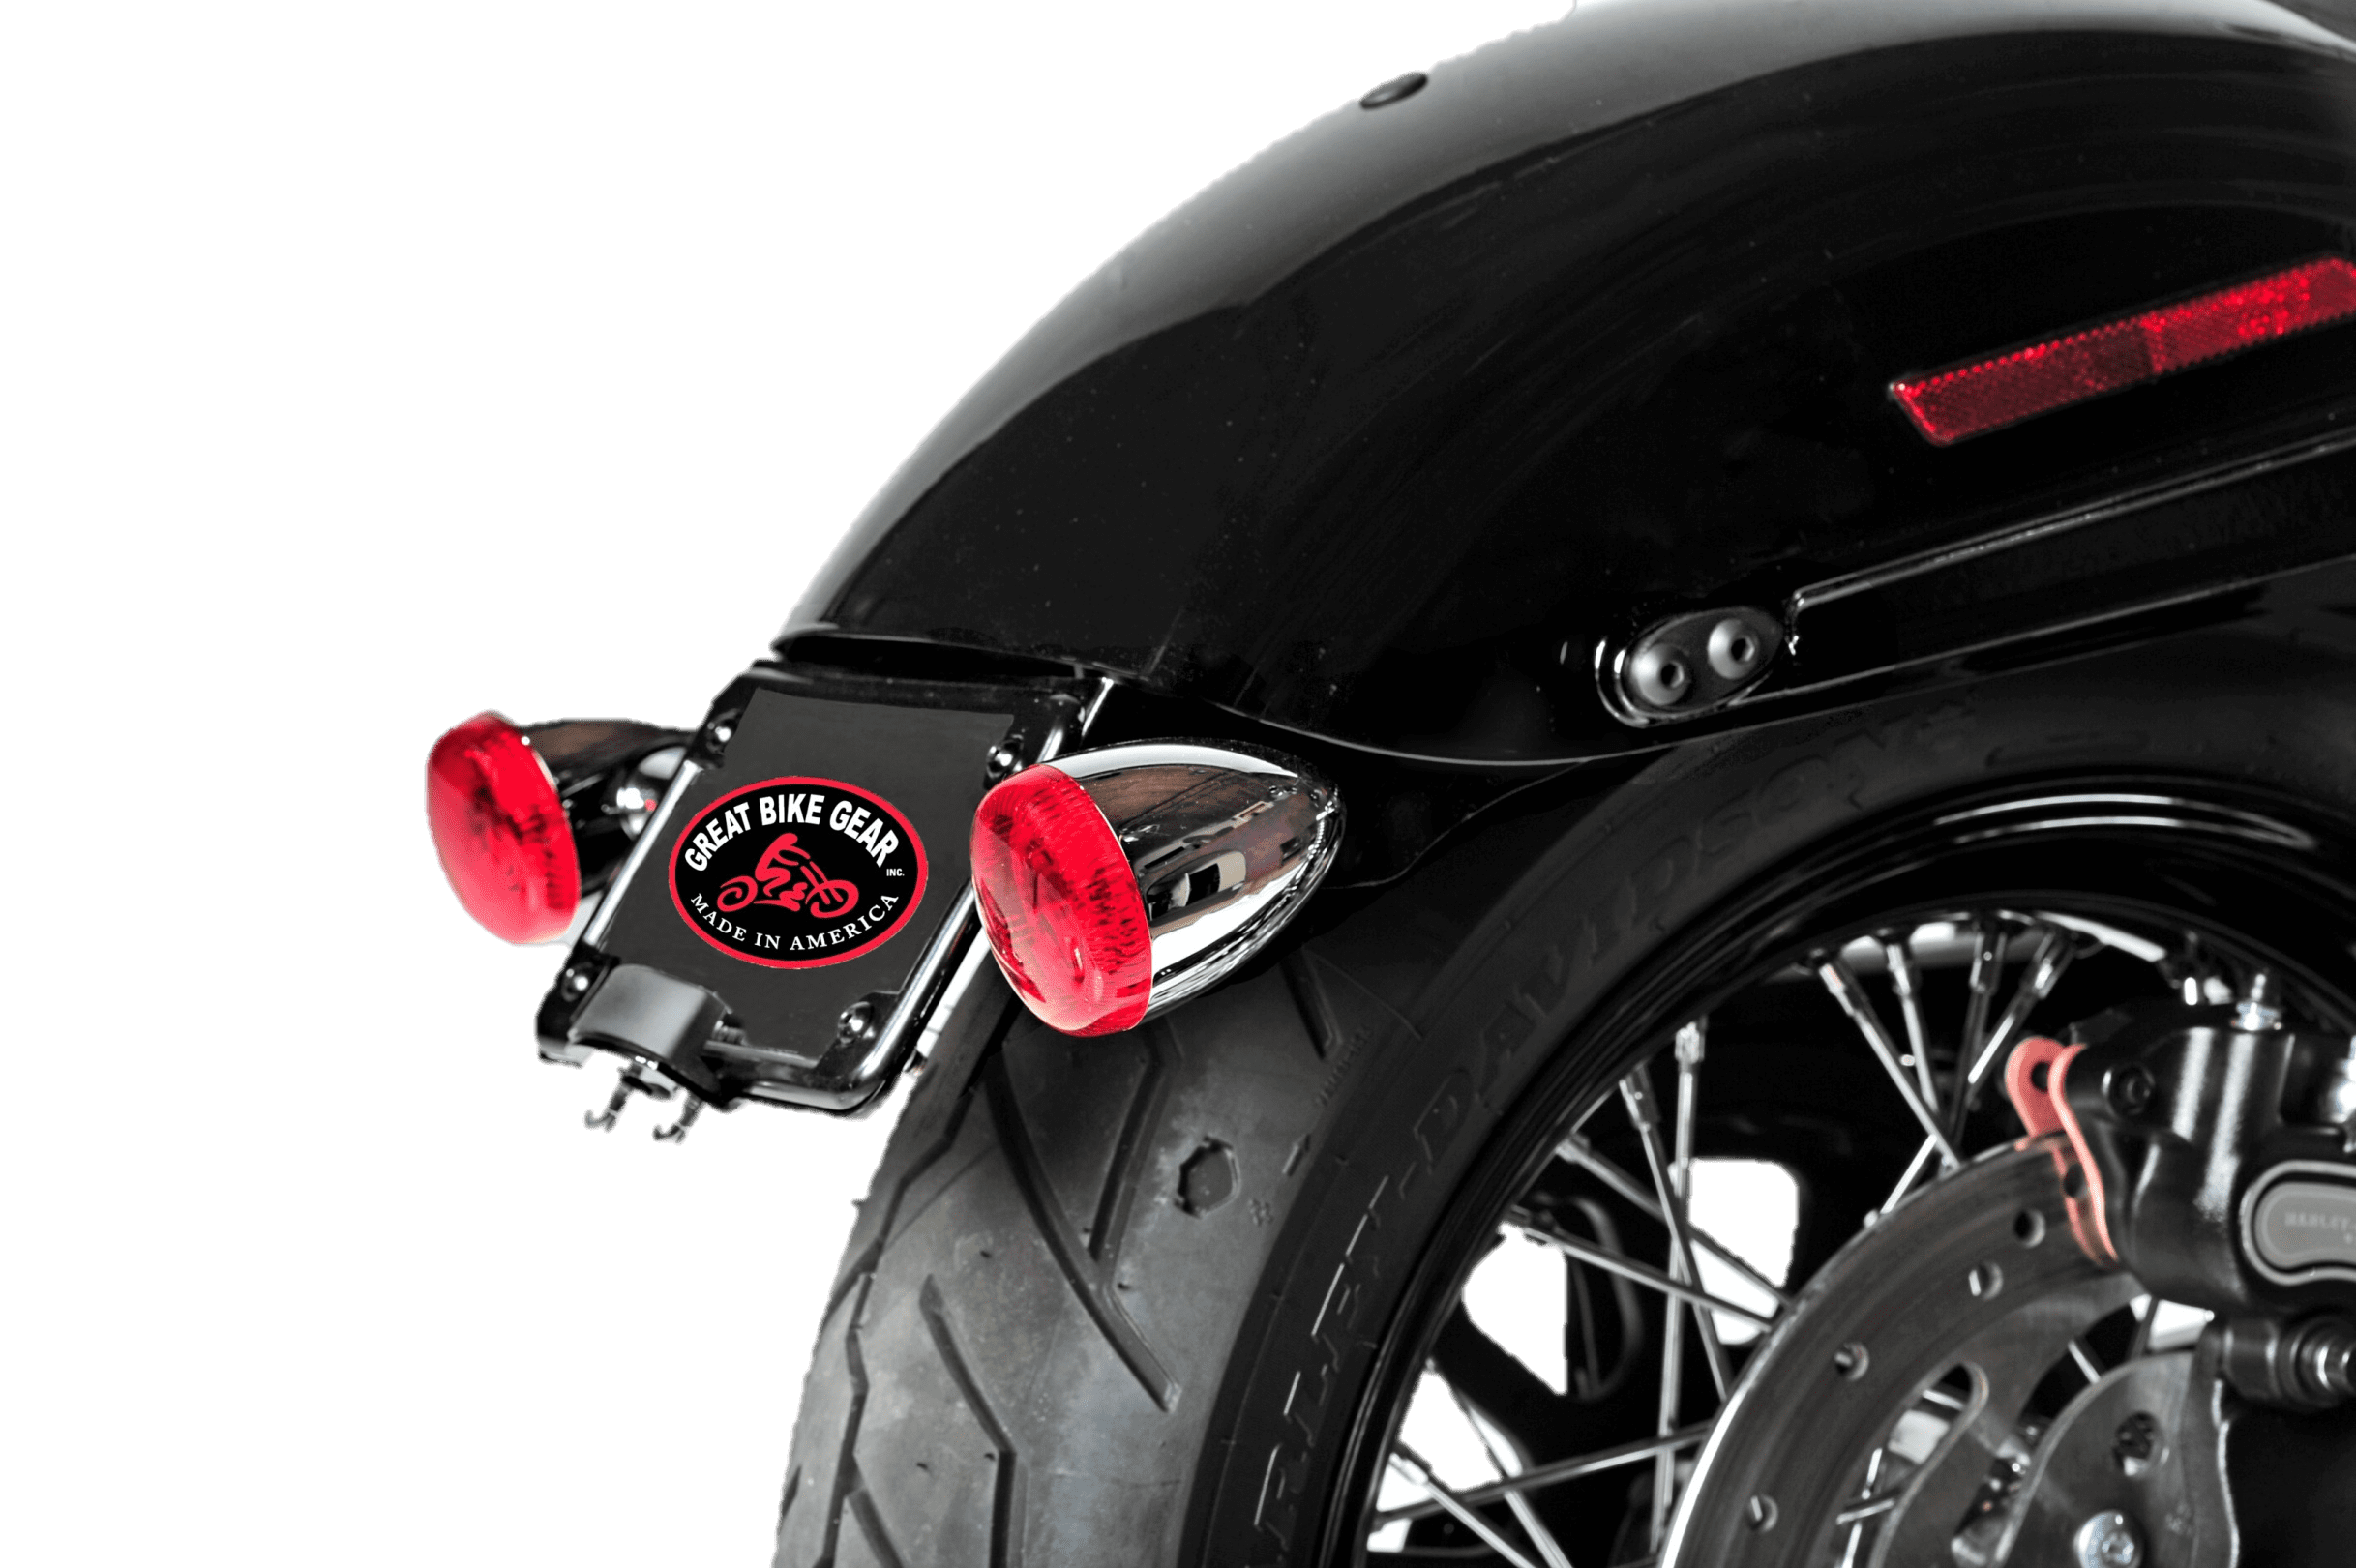 Turn signal relocation kit for 2016-2017 Low Rider S